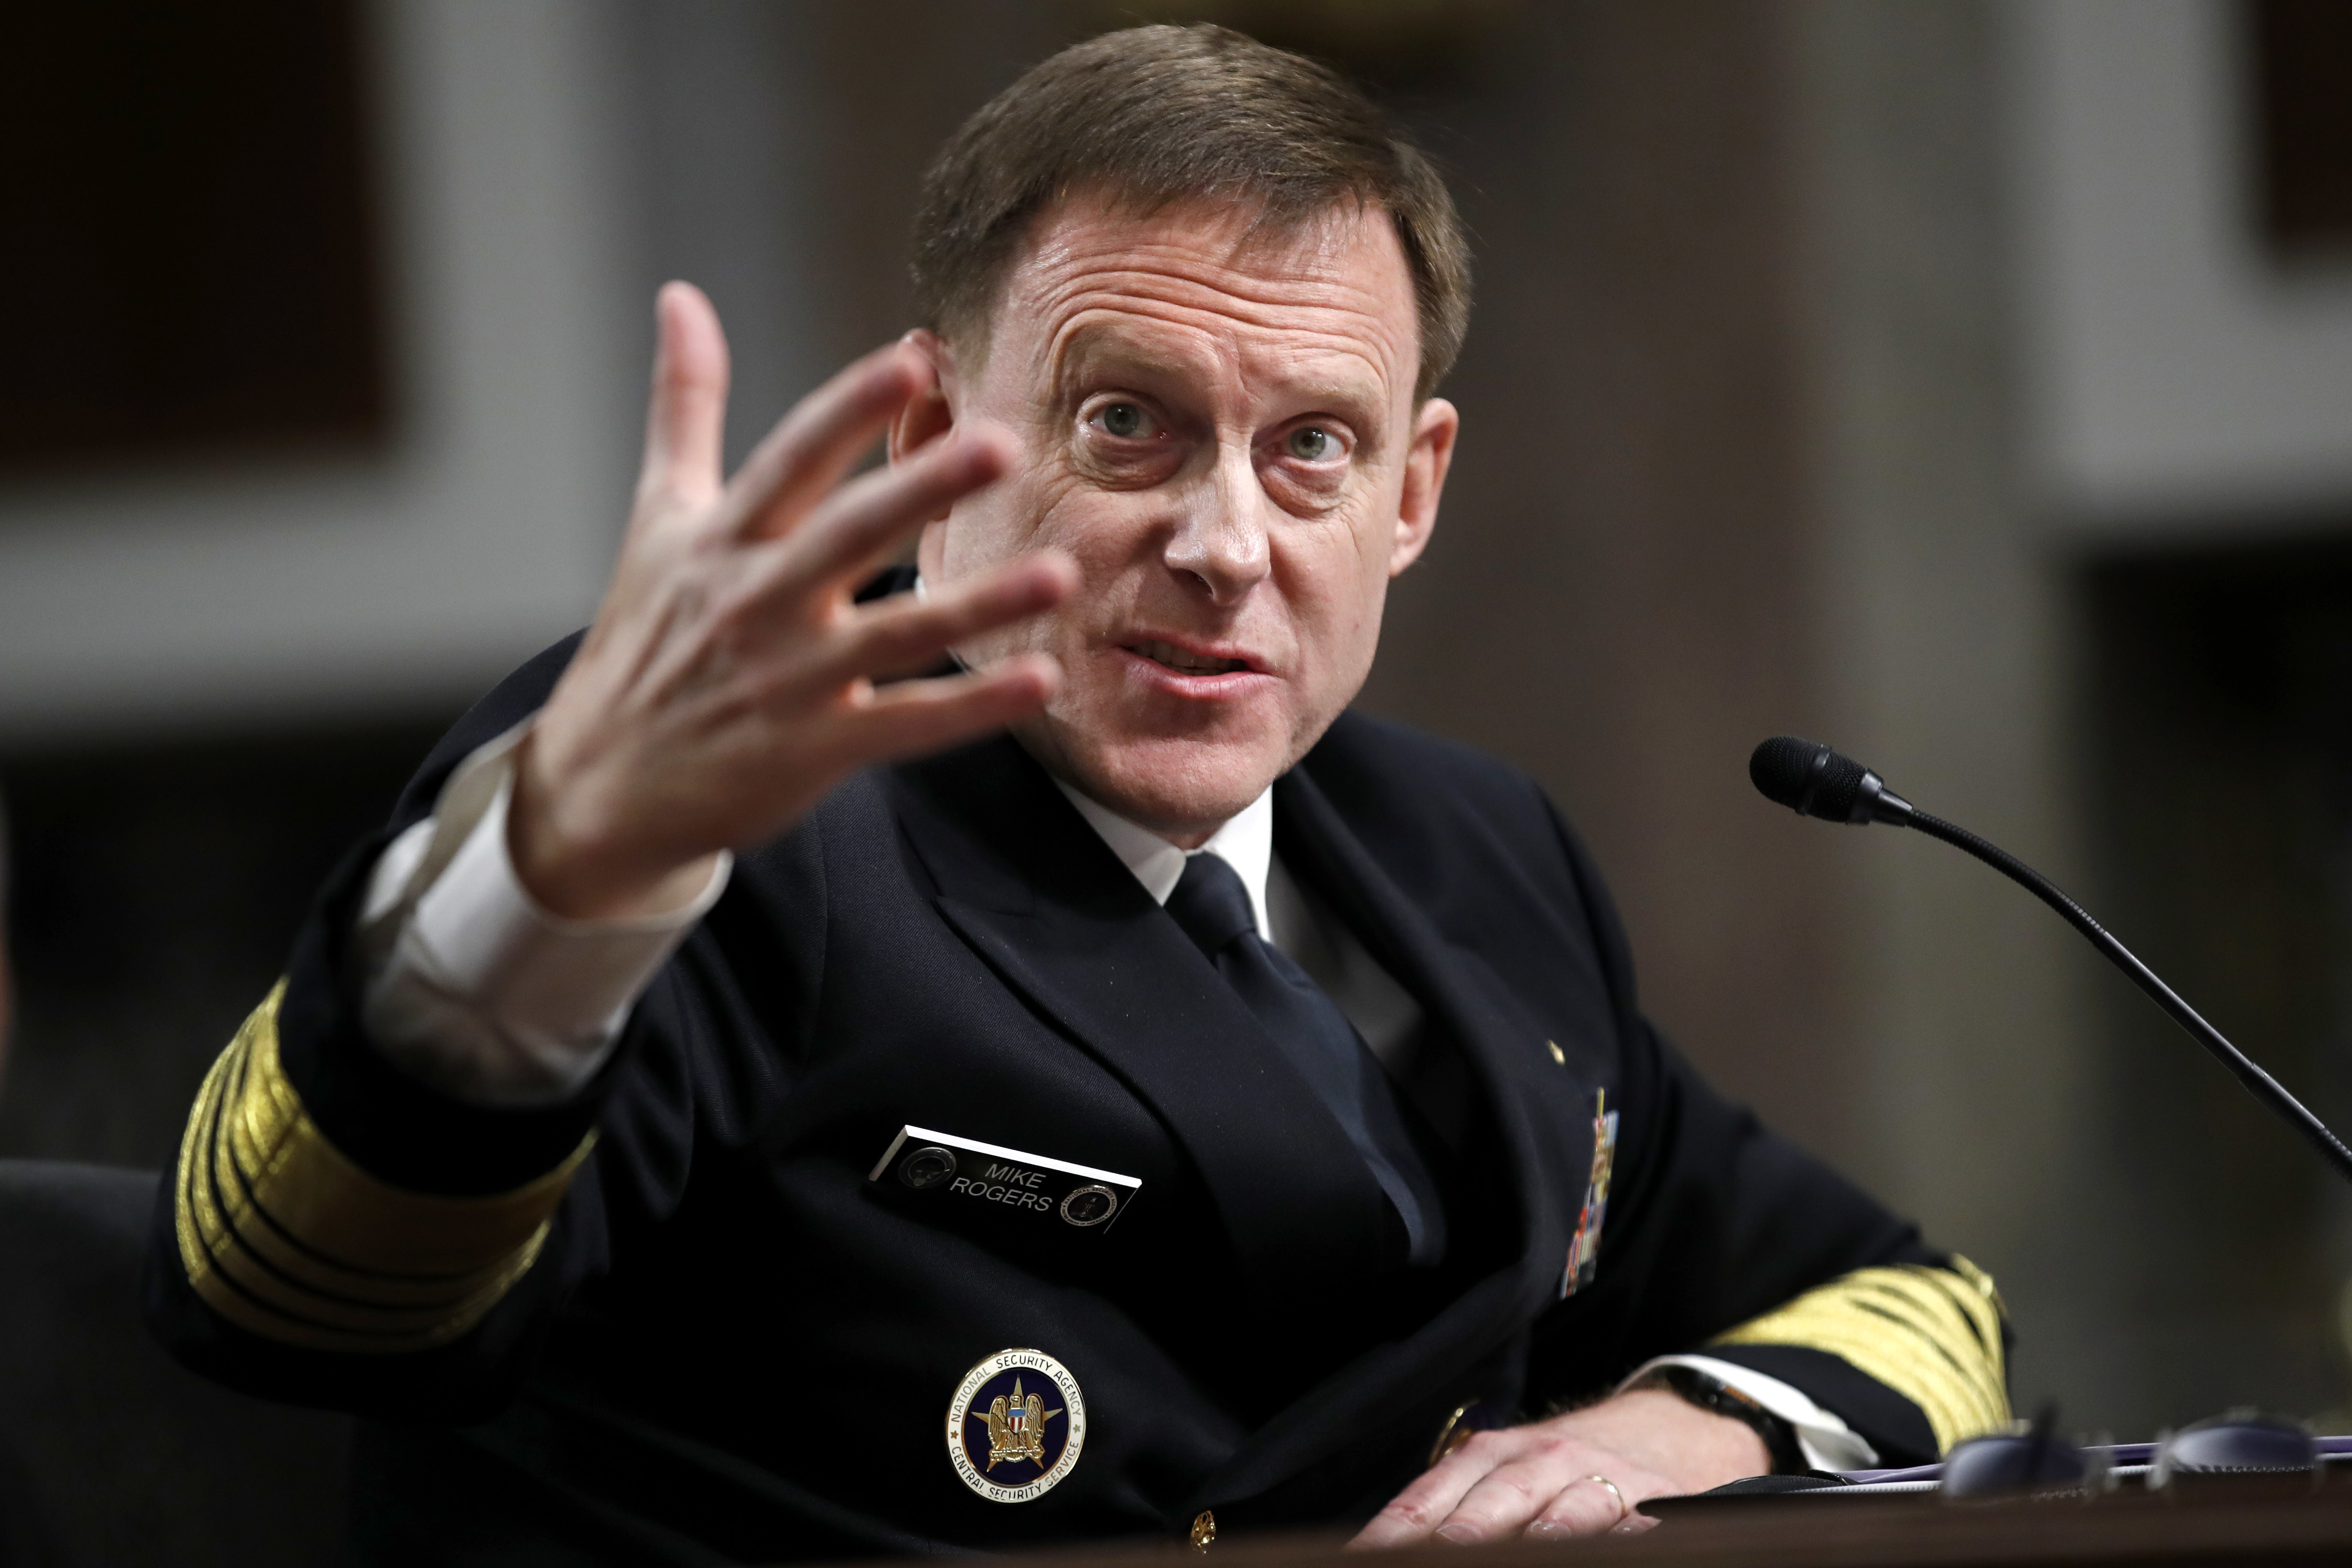 U.S. Cyber Command and the National Security Agency Director Adm. Mike Rogers testifies on Capitol Hill in Washington, Tuesday, May 9, 2017, before the Senate Armed Services Committee. Rogers said the U.S. watched Russians penetrate France's infrastr...